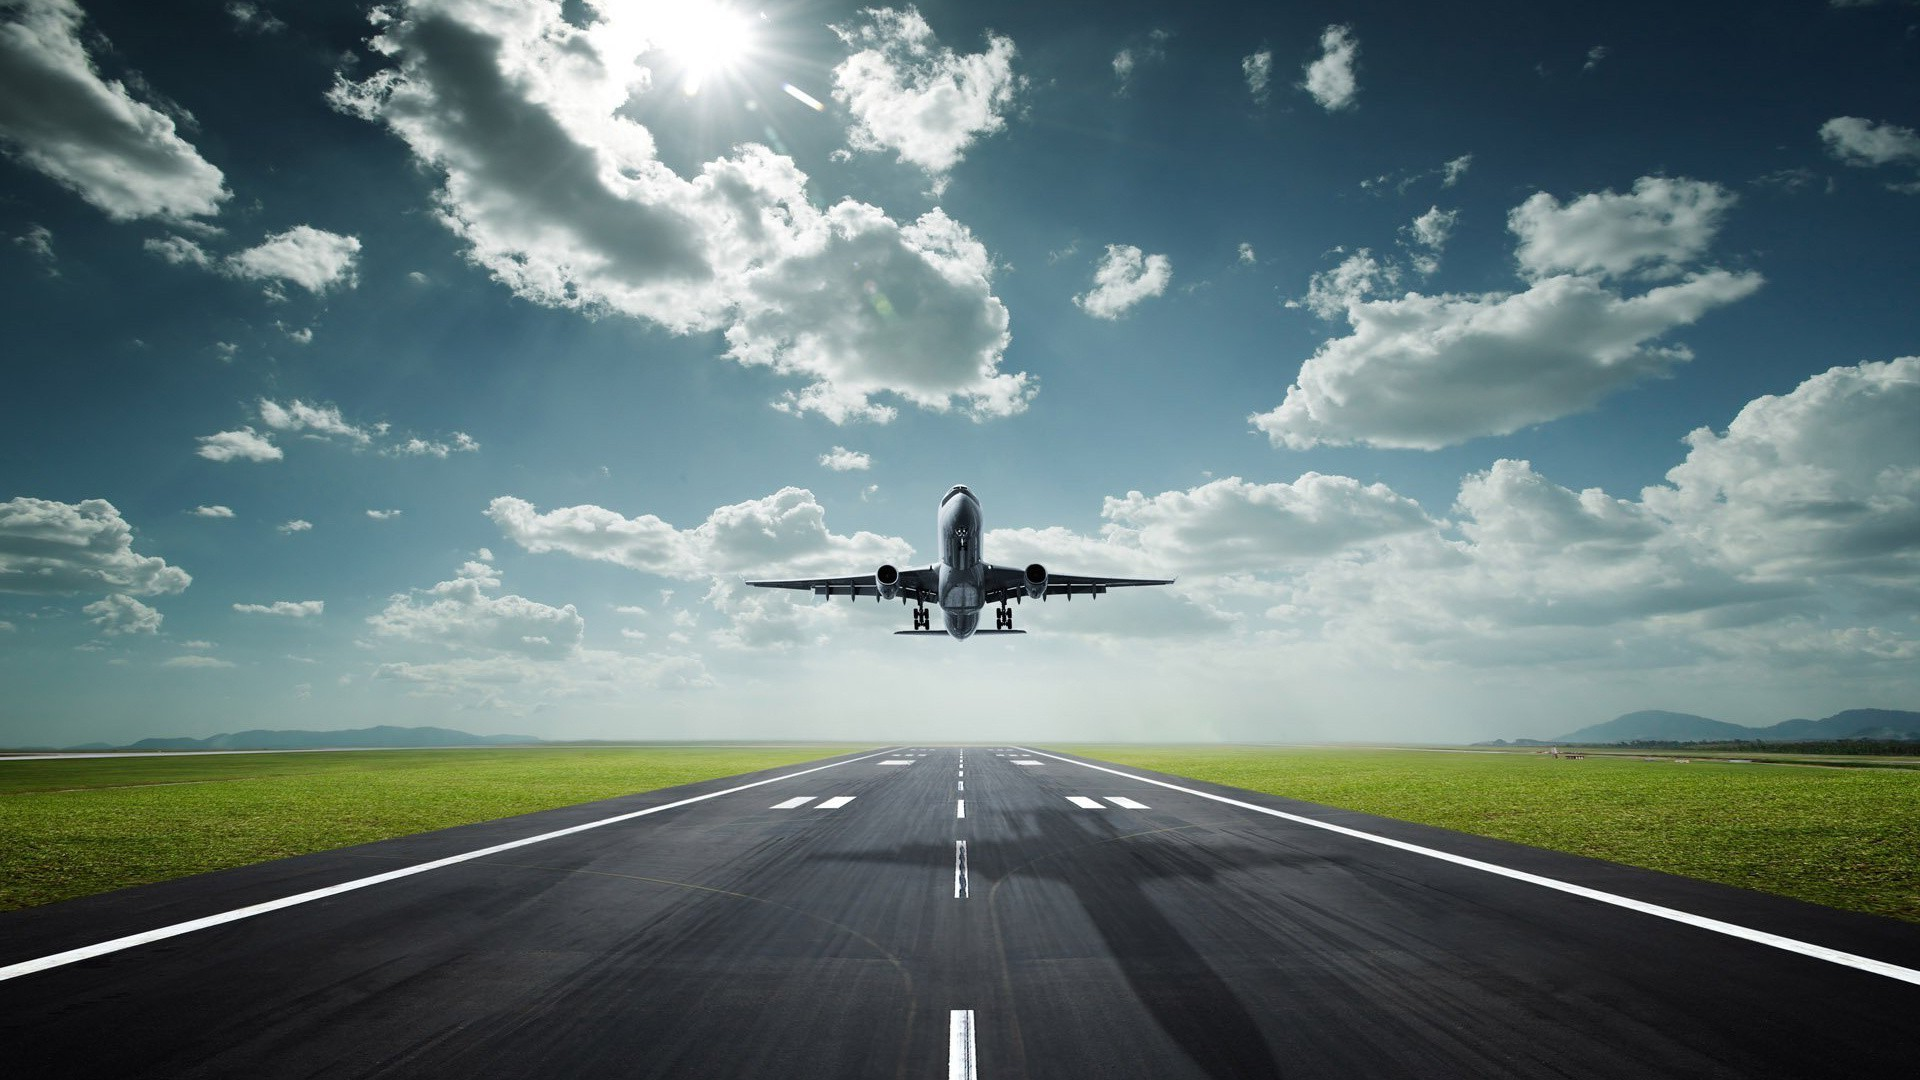 runway transportation system airplane asphalt aircraft airport vehicle sky travel tarmac road fast traffic jet flight